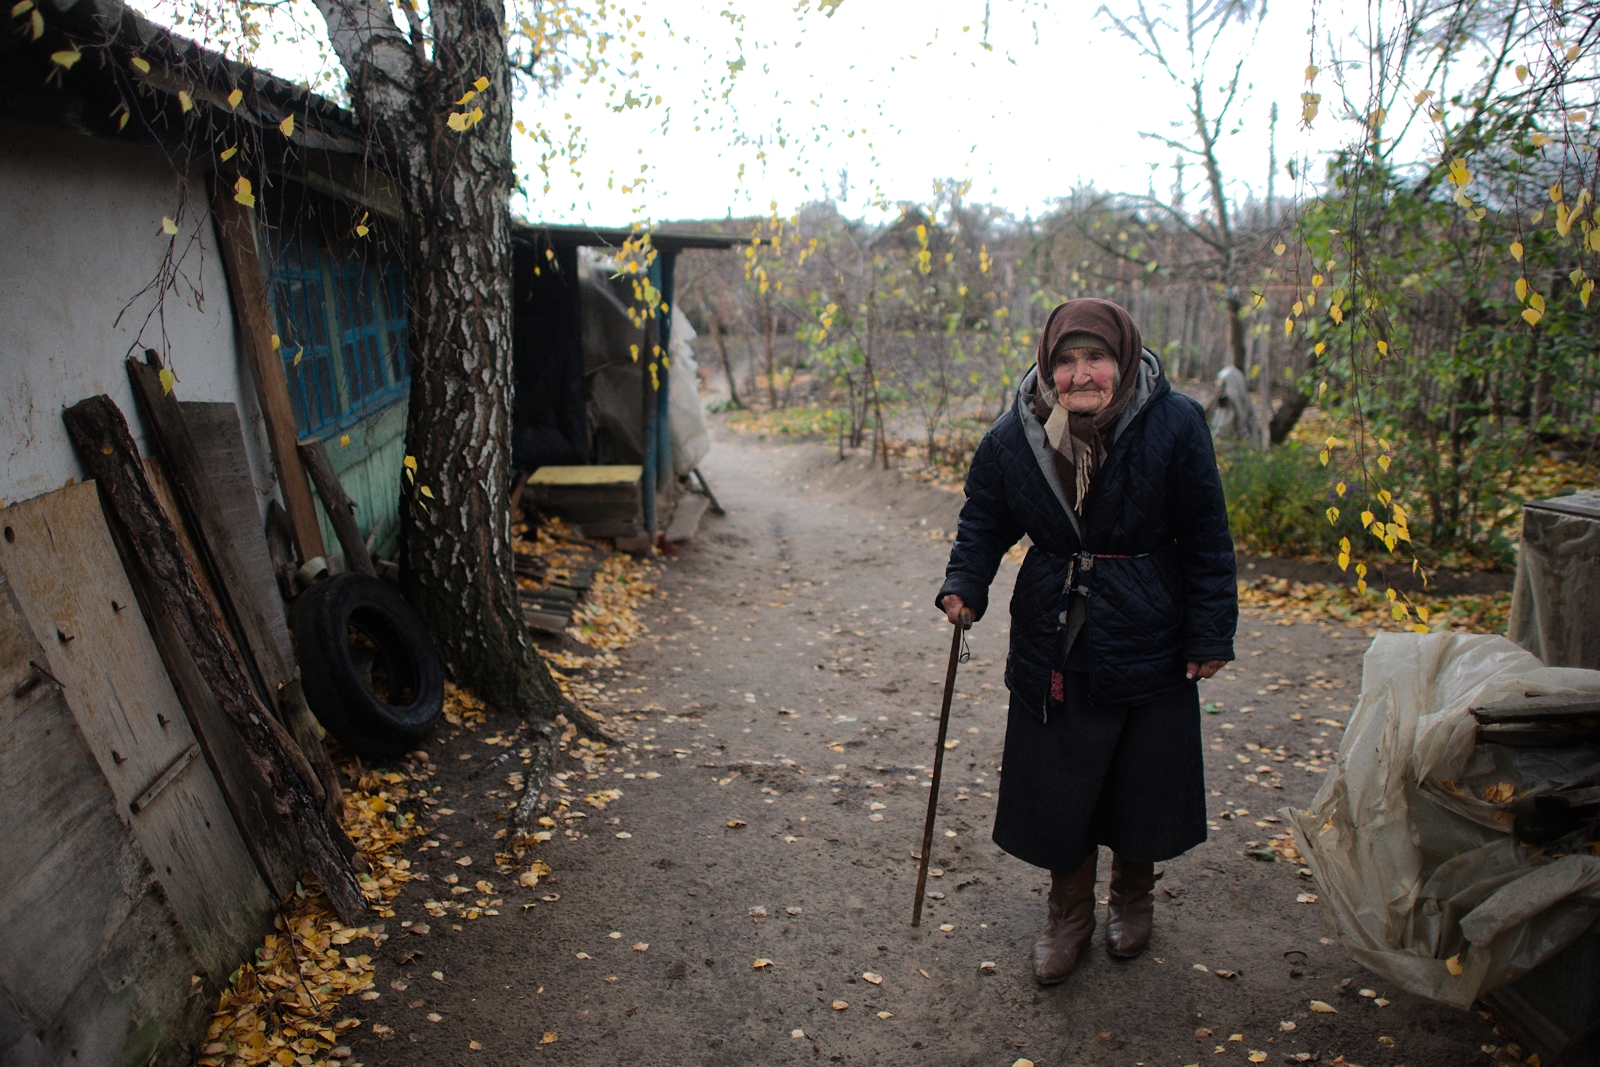 an elderly women walks on the street while holding a cane.